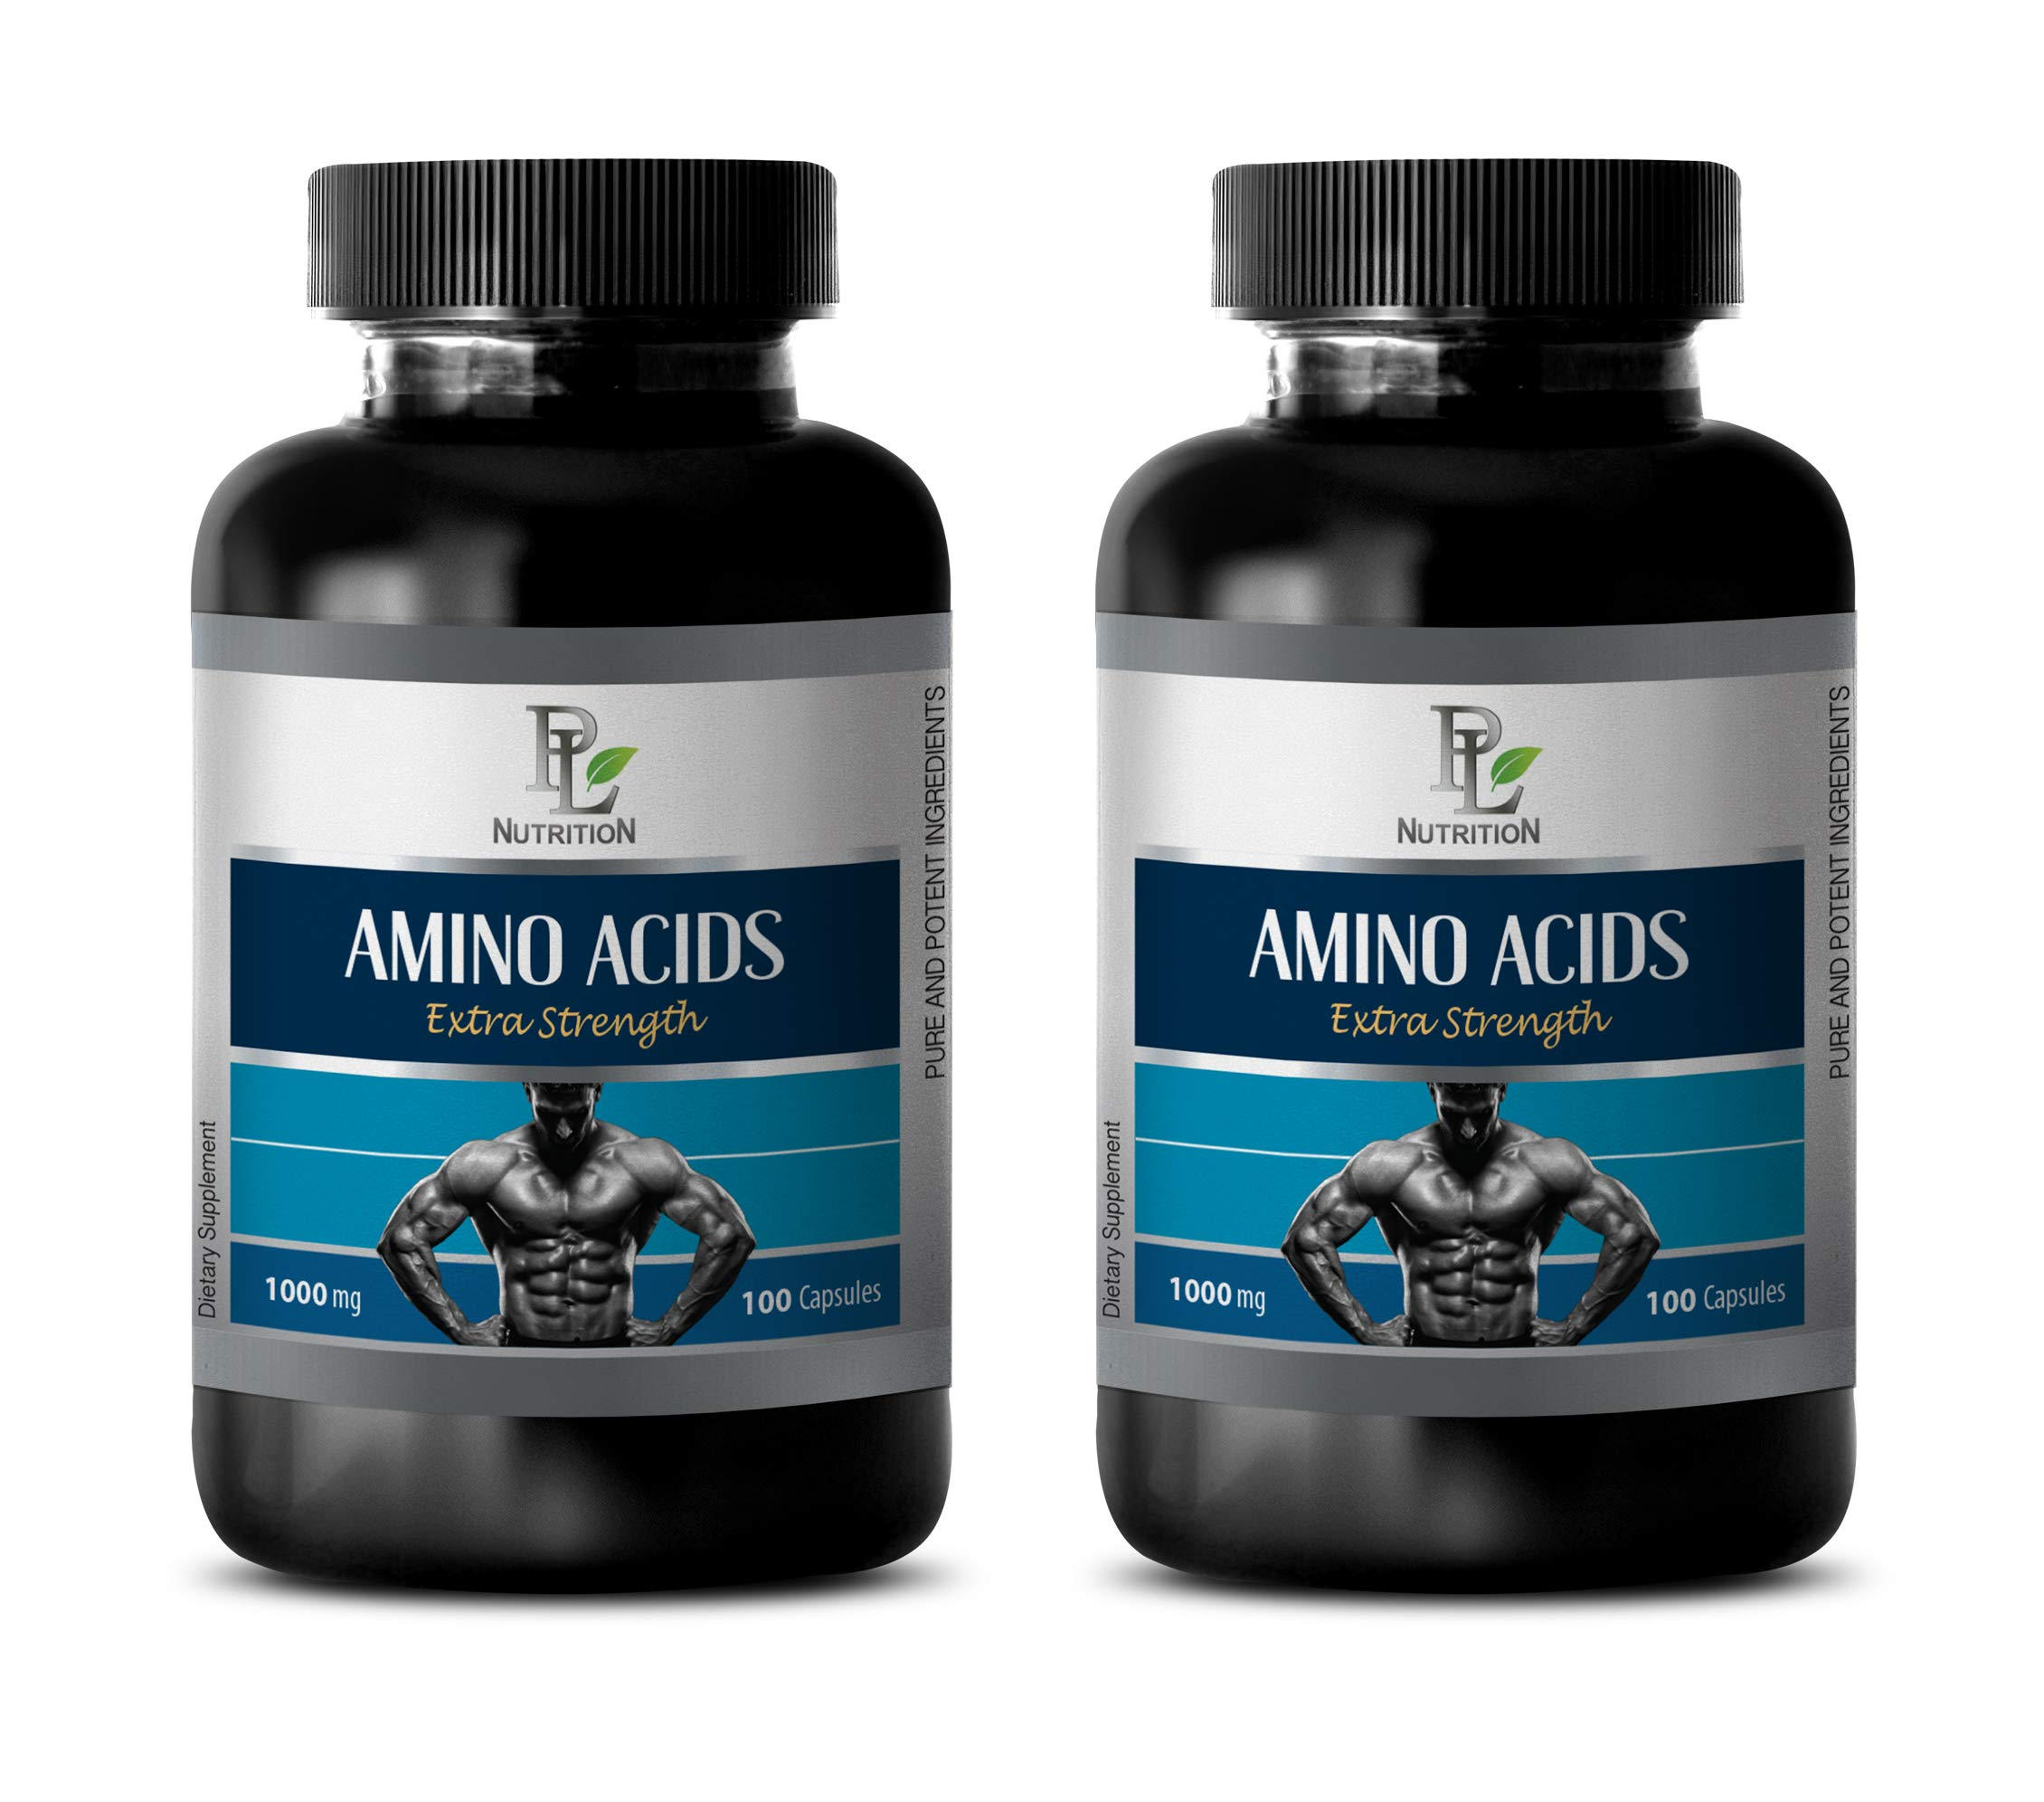 Workout Supplements for Men Testosterone - Amino ACIDS Extra Strength 1000MG - l-tyrosine Supplement - 2 Bottles 200 Capsules